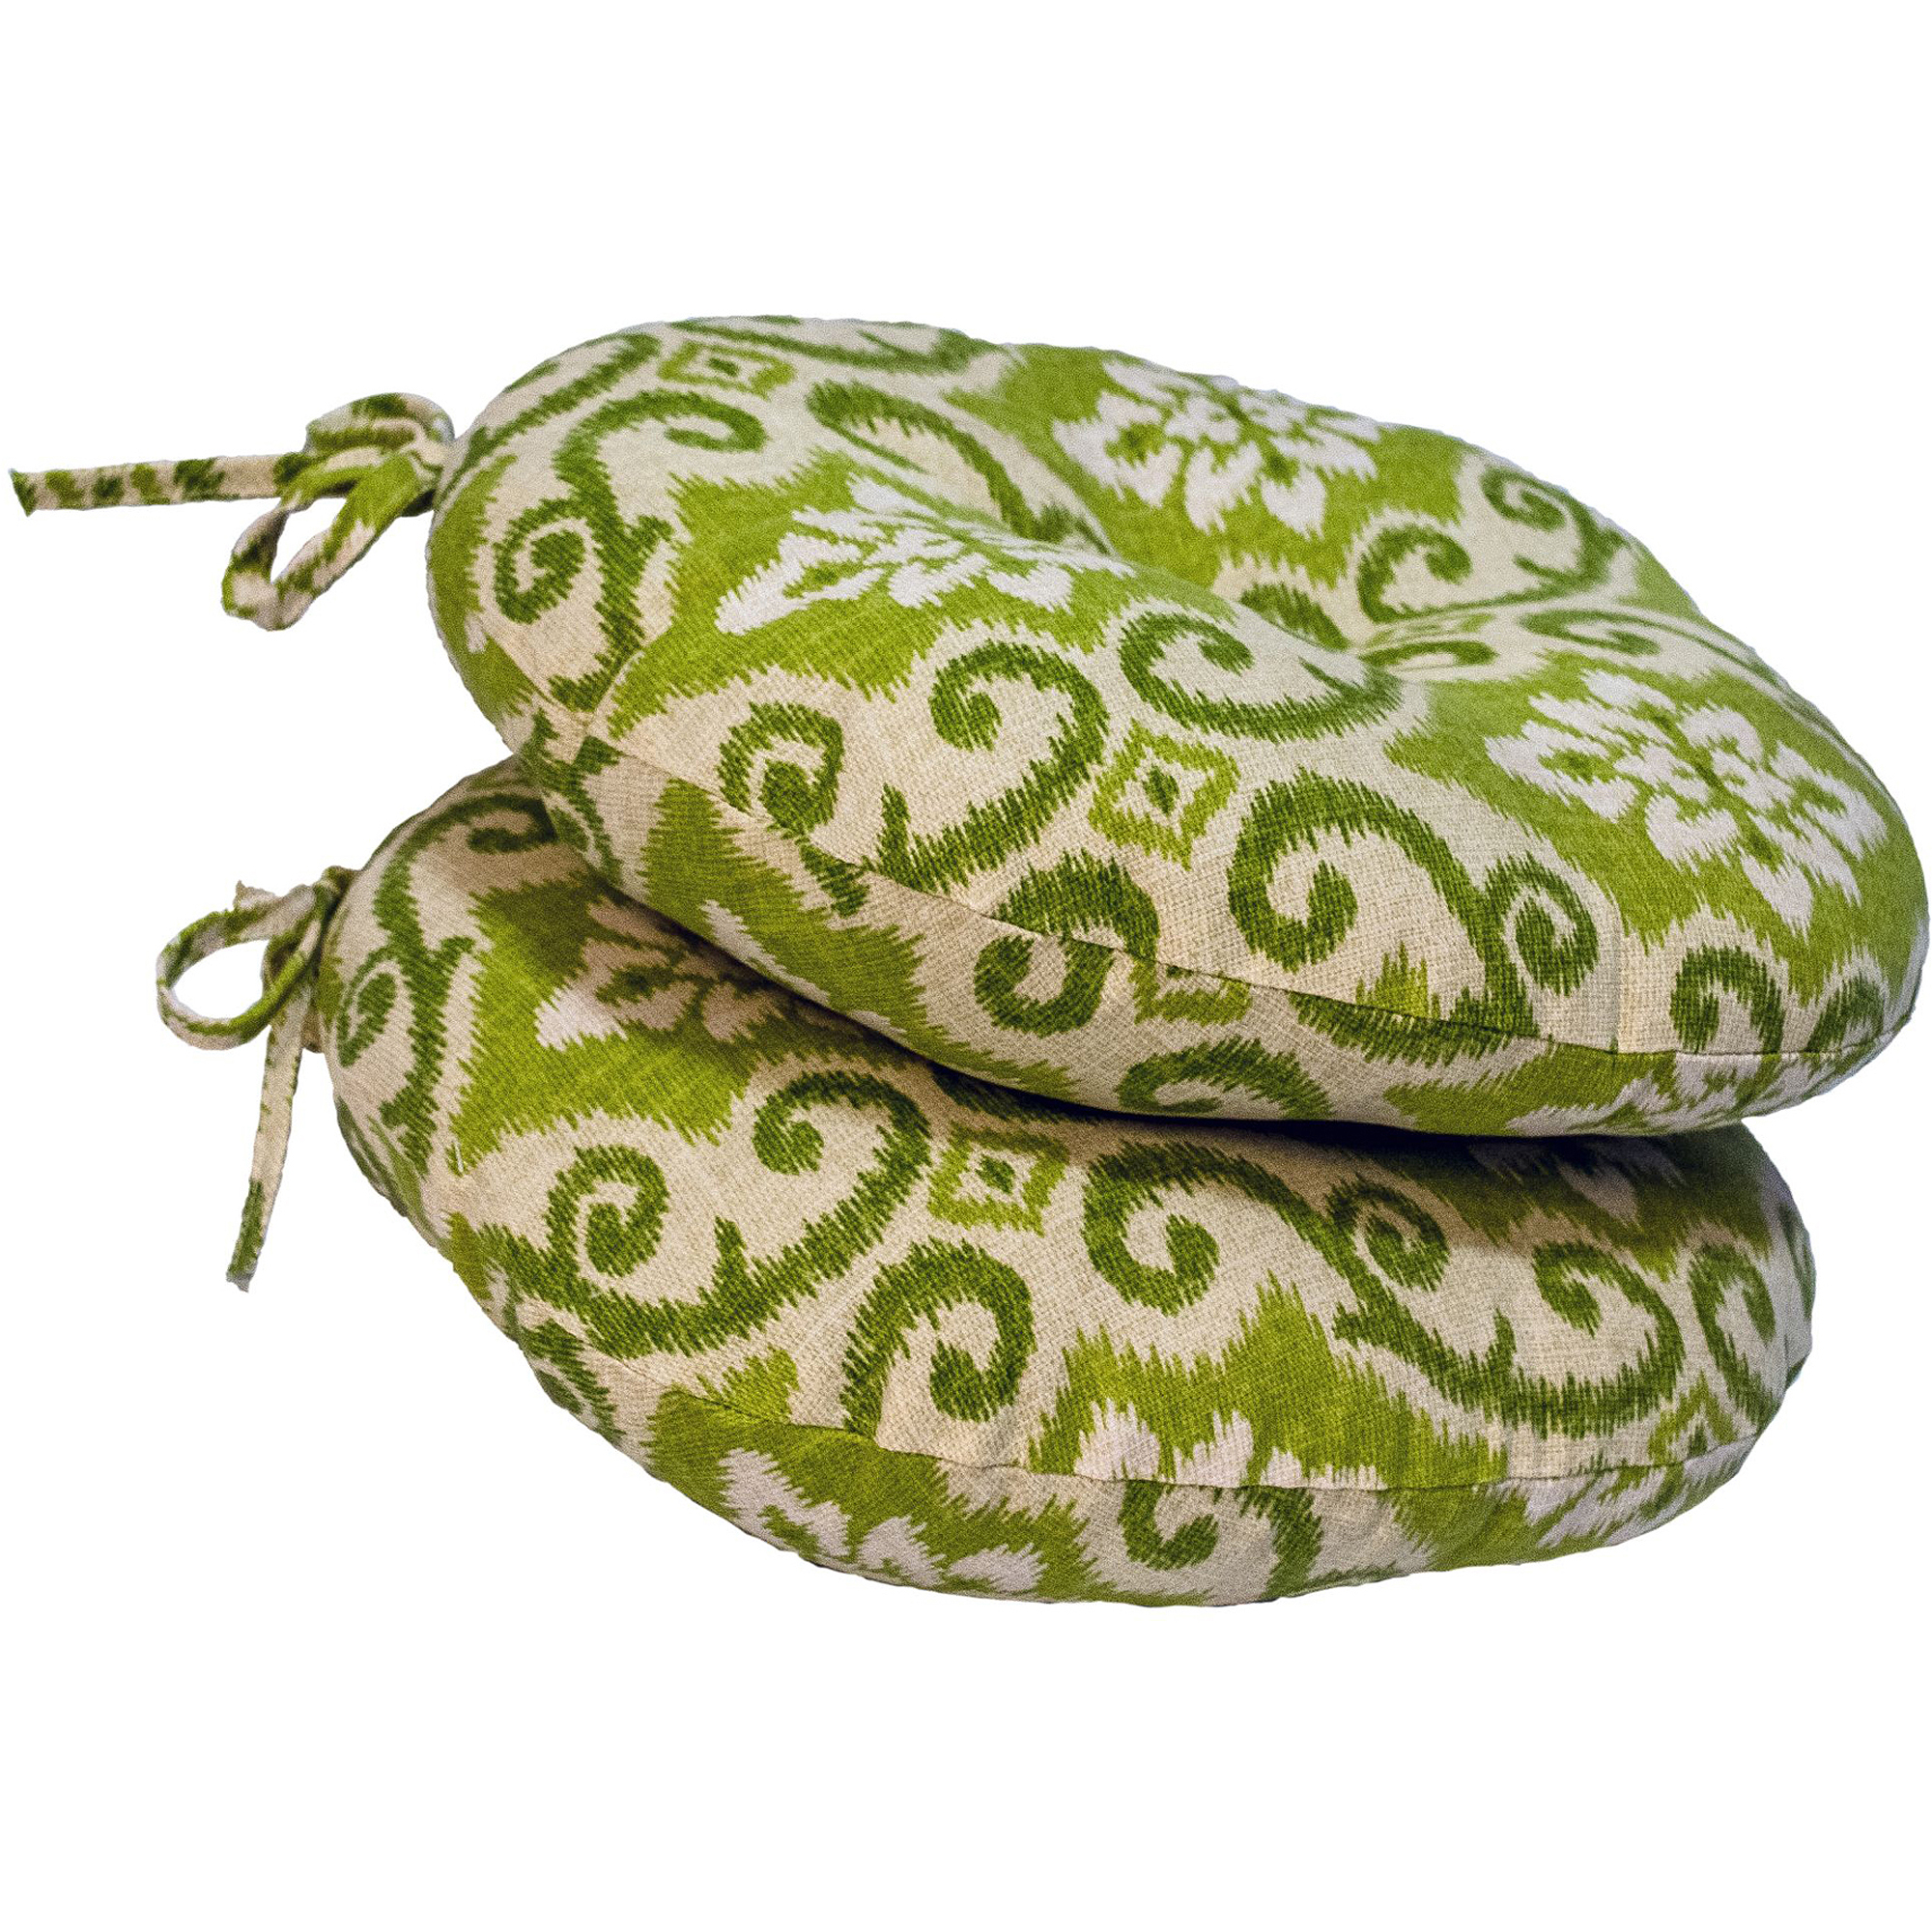 "Greendale Home Fashions 15"" Round Outdoor Bistro Chair Cushion, Set of 2, Green Ikat"